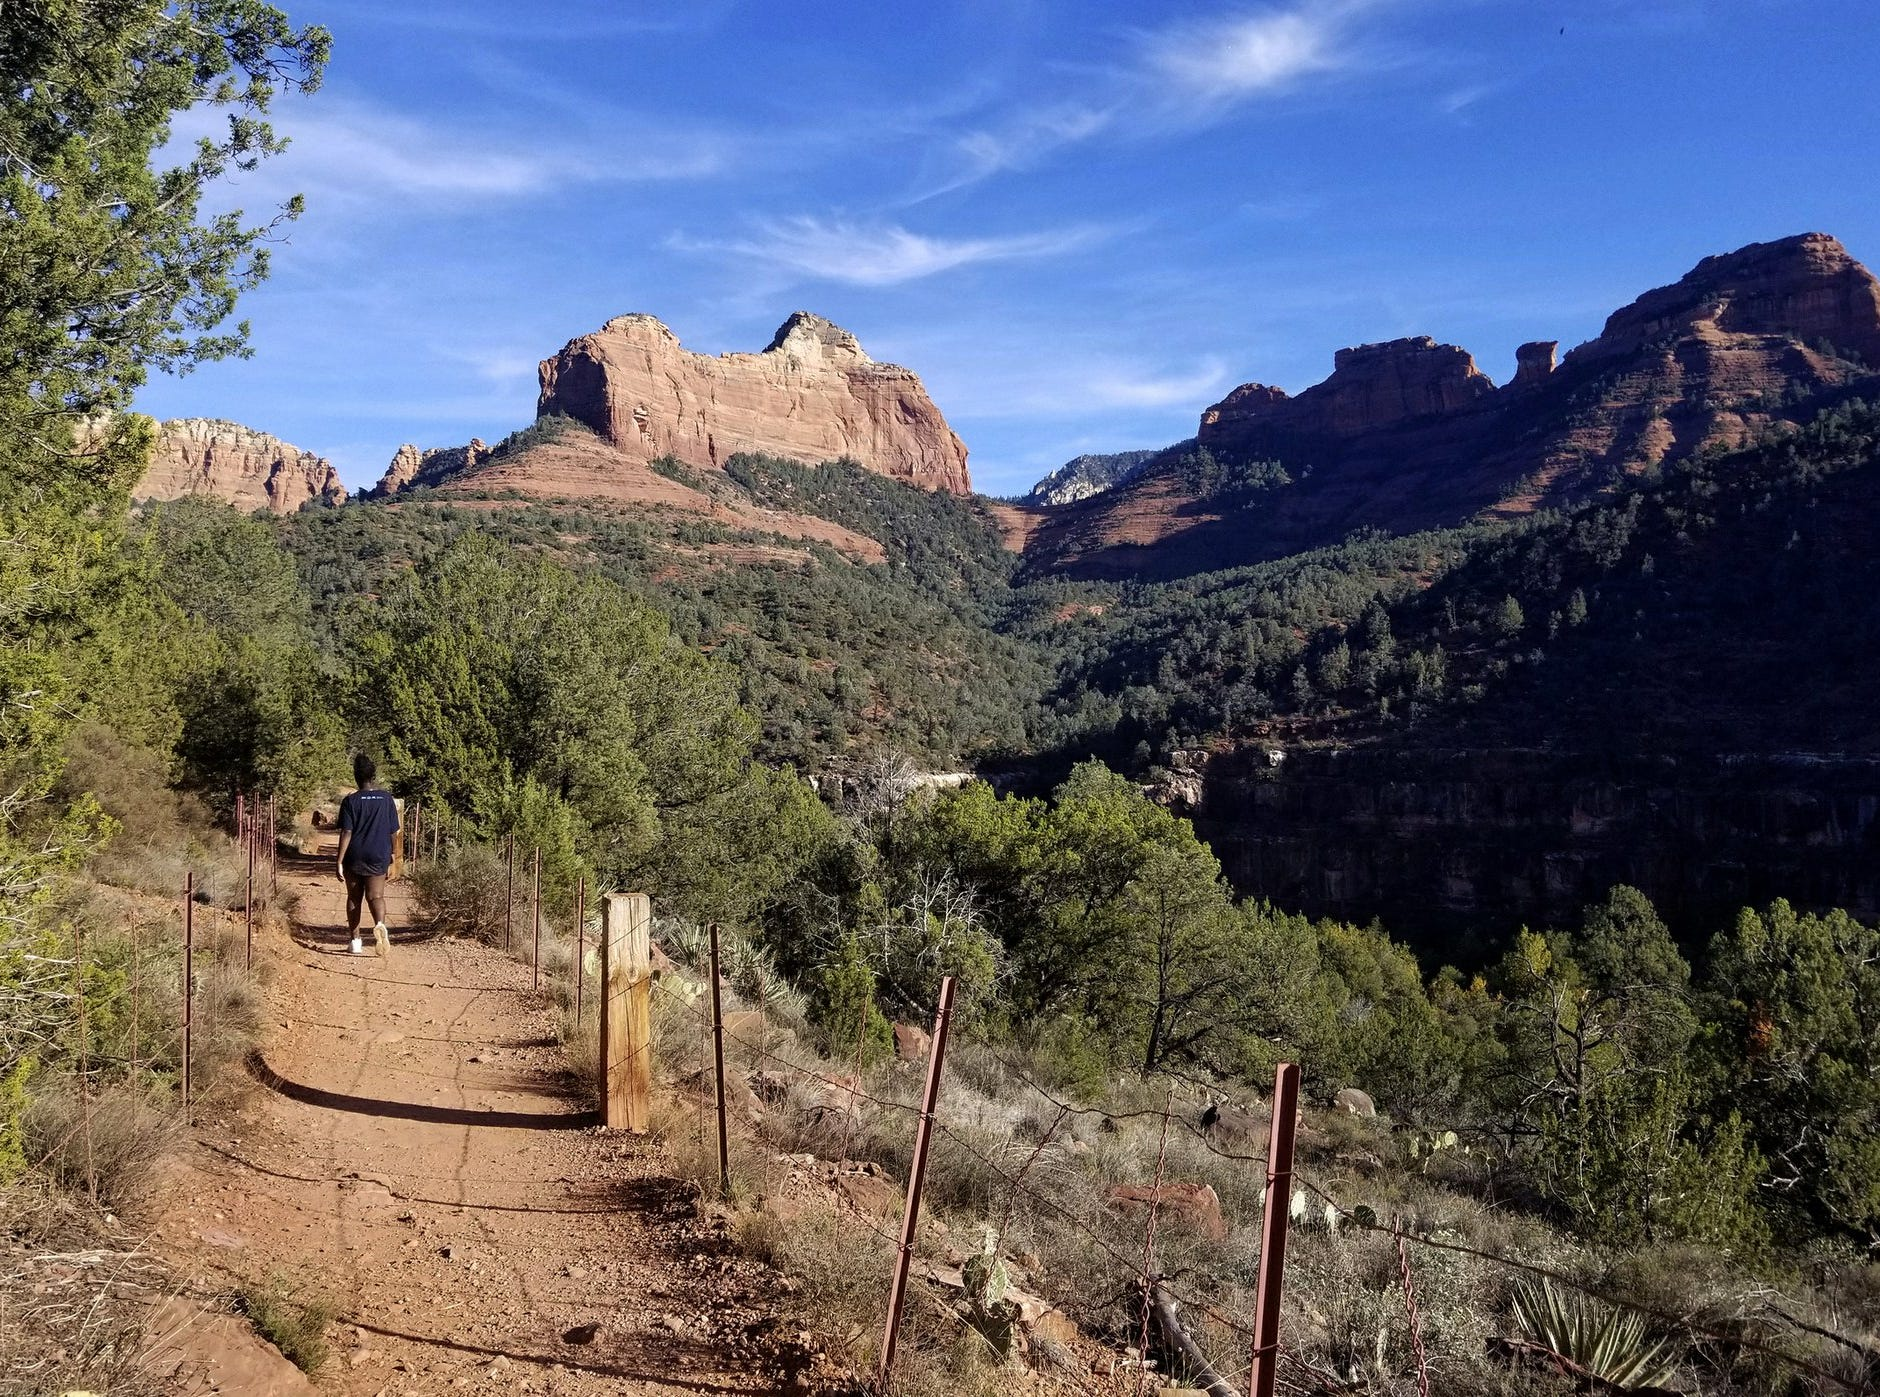 Hiking the Huckaby Trail on the way to Oak Creek in Sedona.